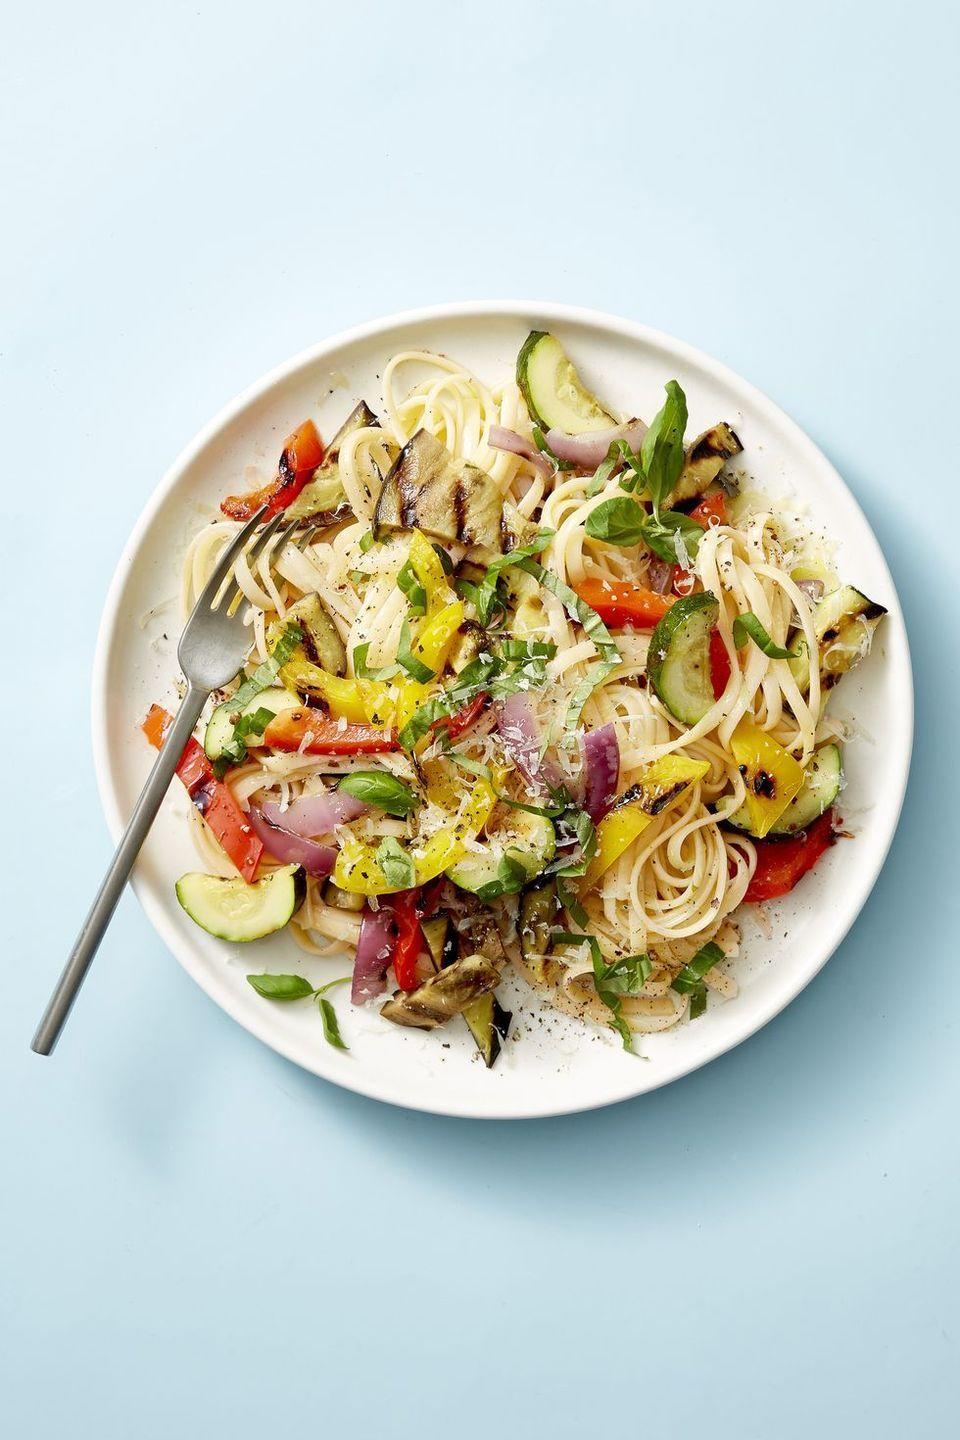 """<p>Why choose one summer veggie when you can have five?</p><p><em><a href=""""https://www.goodhousekeeping.com/food-recipes/easy/a21601536/grilled-ratatouille-linguine-recipe/"""" rel=""""nofollow noopener"""" target=""""_blank"""" data-ylk=""""slk:Get the recipe for Grilled Ratatouille Linguine »"""" class=""""link rapid-noclick-resp"""">Get the recipe for Grilled Ratatouille Linguine »</a></em></p><p><strong>RELATED:</strong> <a href=""""https://www.goodhousekeeping.com/food-recipes/easy/g2352/quick-summer-dinner-recipes/"""" rel=""""nofollow noopener"""" target=""""_blank"""" data-ylk=""""slk:60 Quick Summer Dinner Recipes for Easier Weeknights"""" class=""""link rapid-noclick-resp"""">60 Quick Summer Dinner Recipes for Easier Weeknights</a><br></p>"""